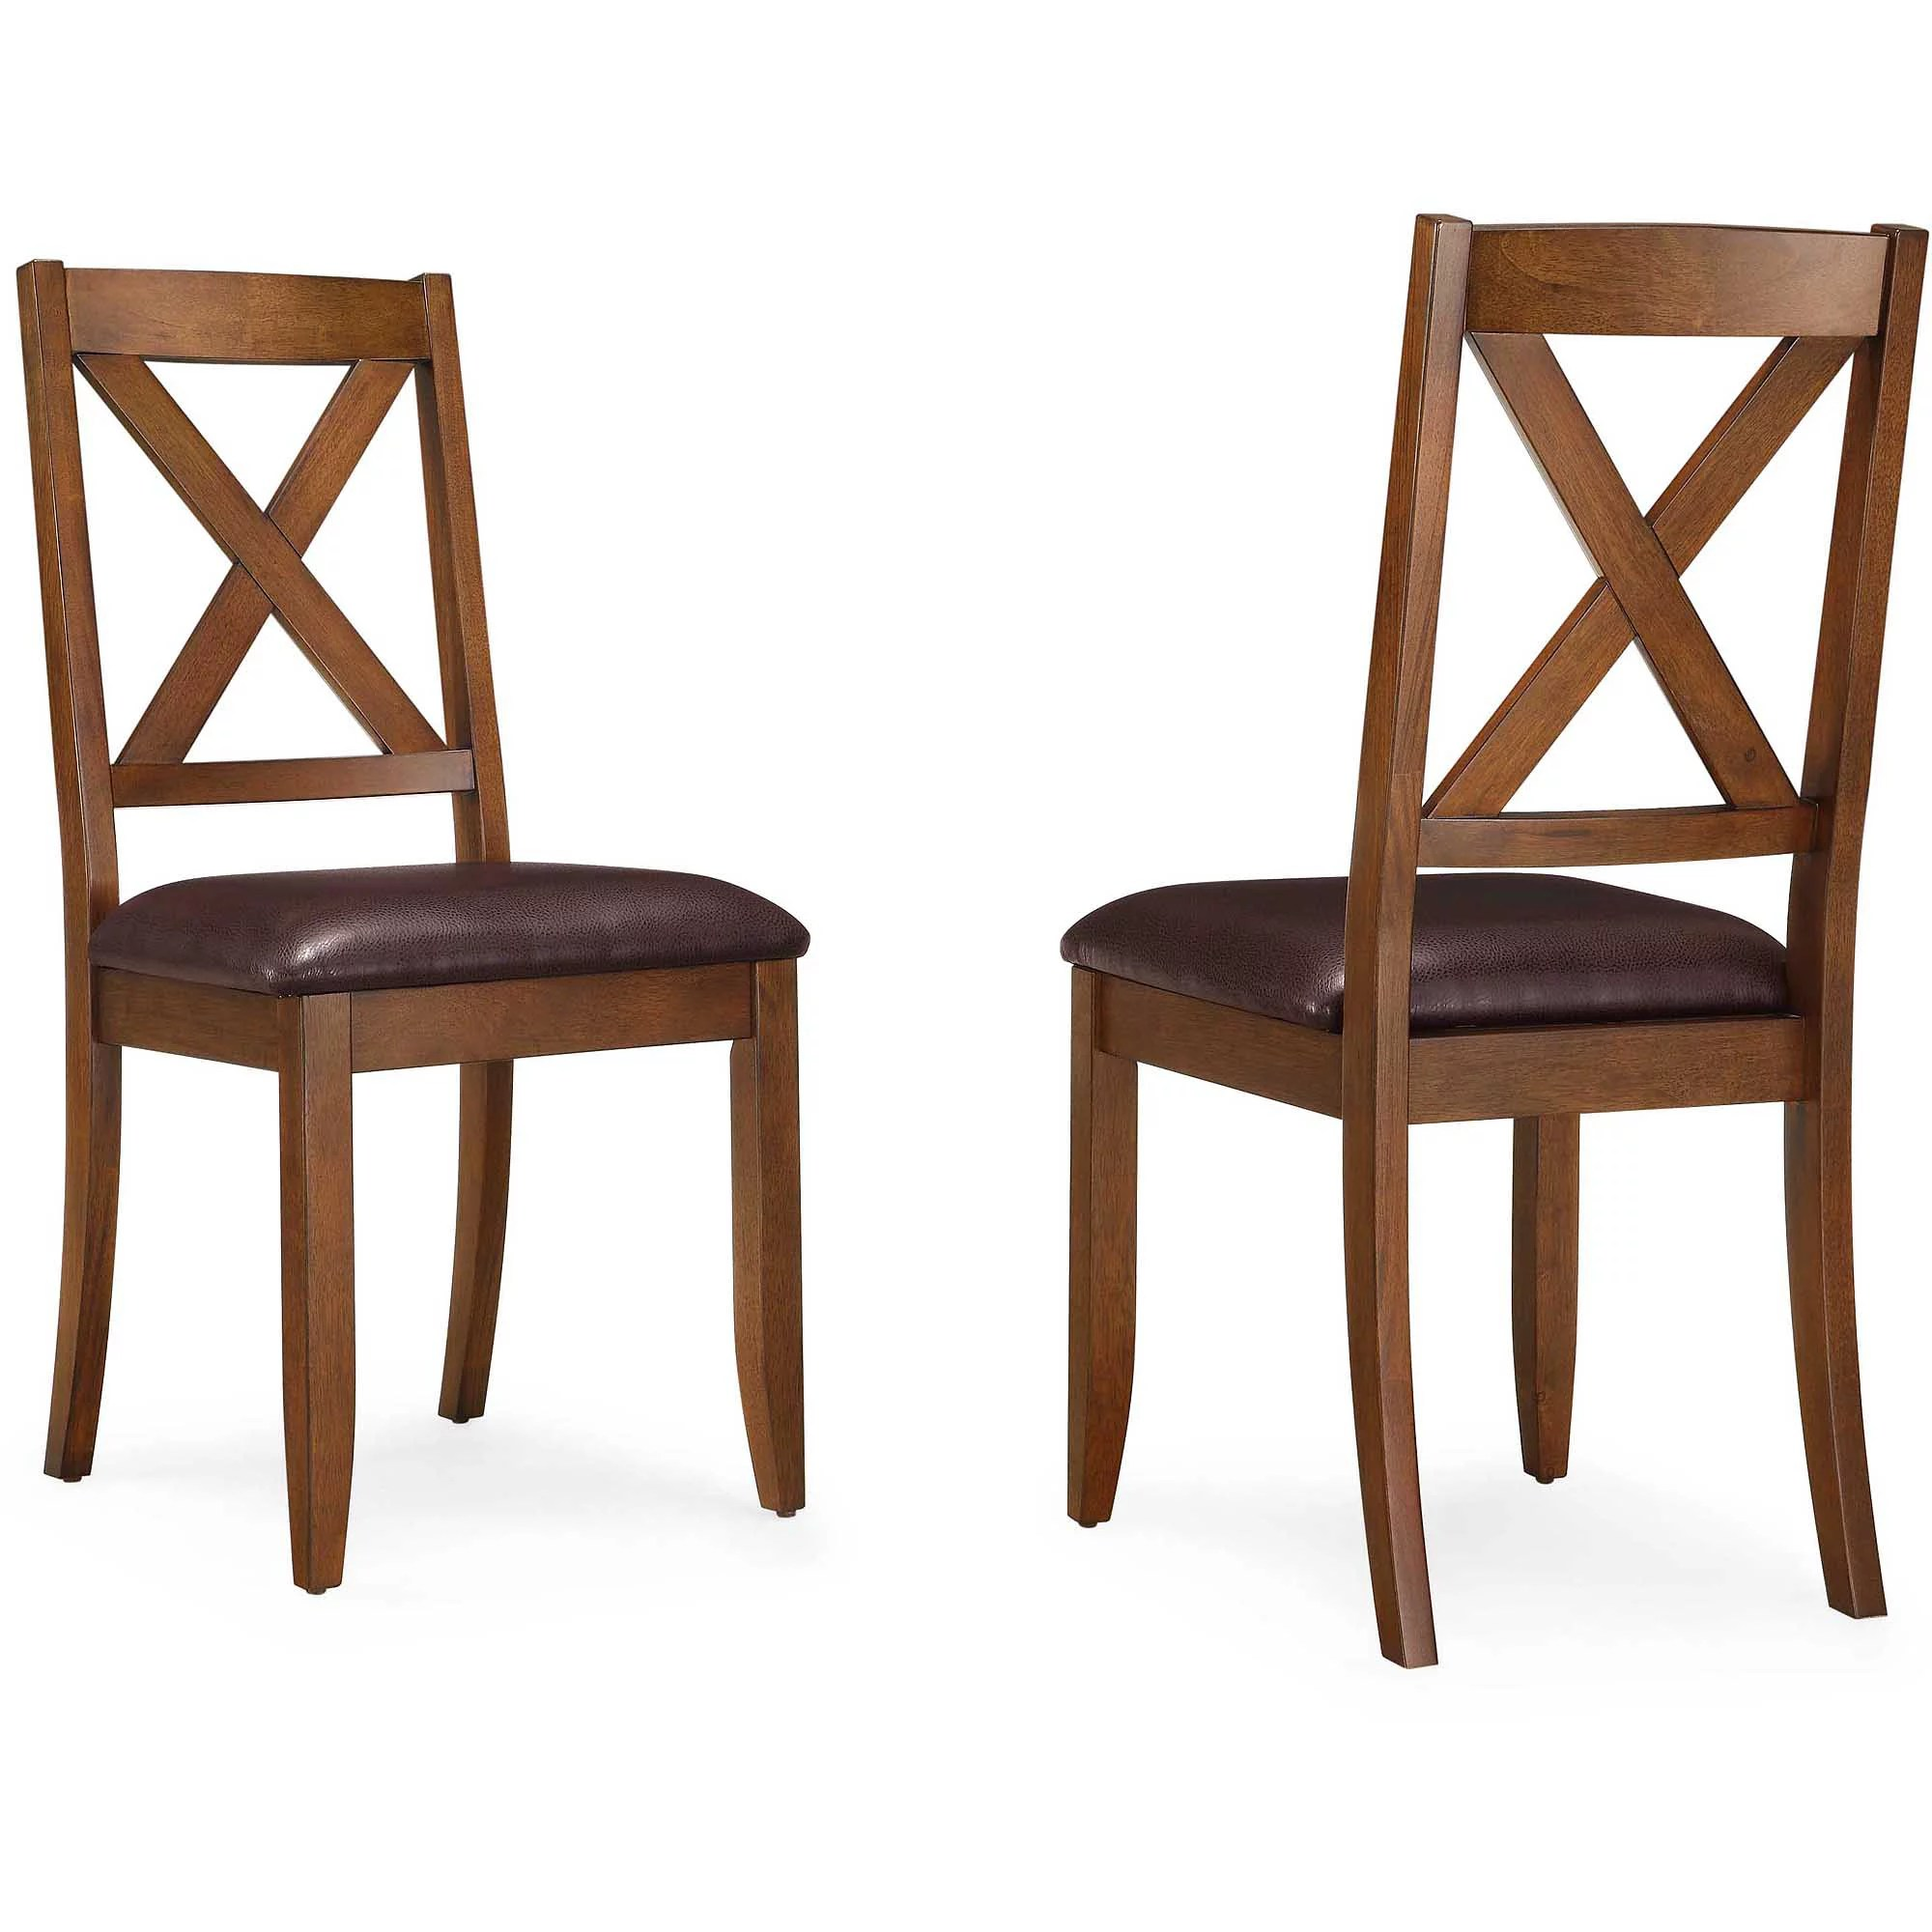 Kitchen Chairs Wood Better Homes Gardens Maddox Crossing Dining Chair Set Of 2 Brown